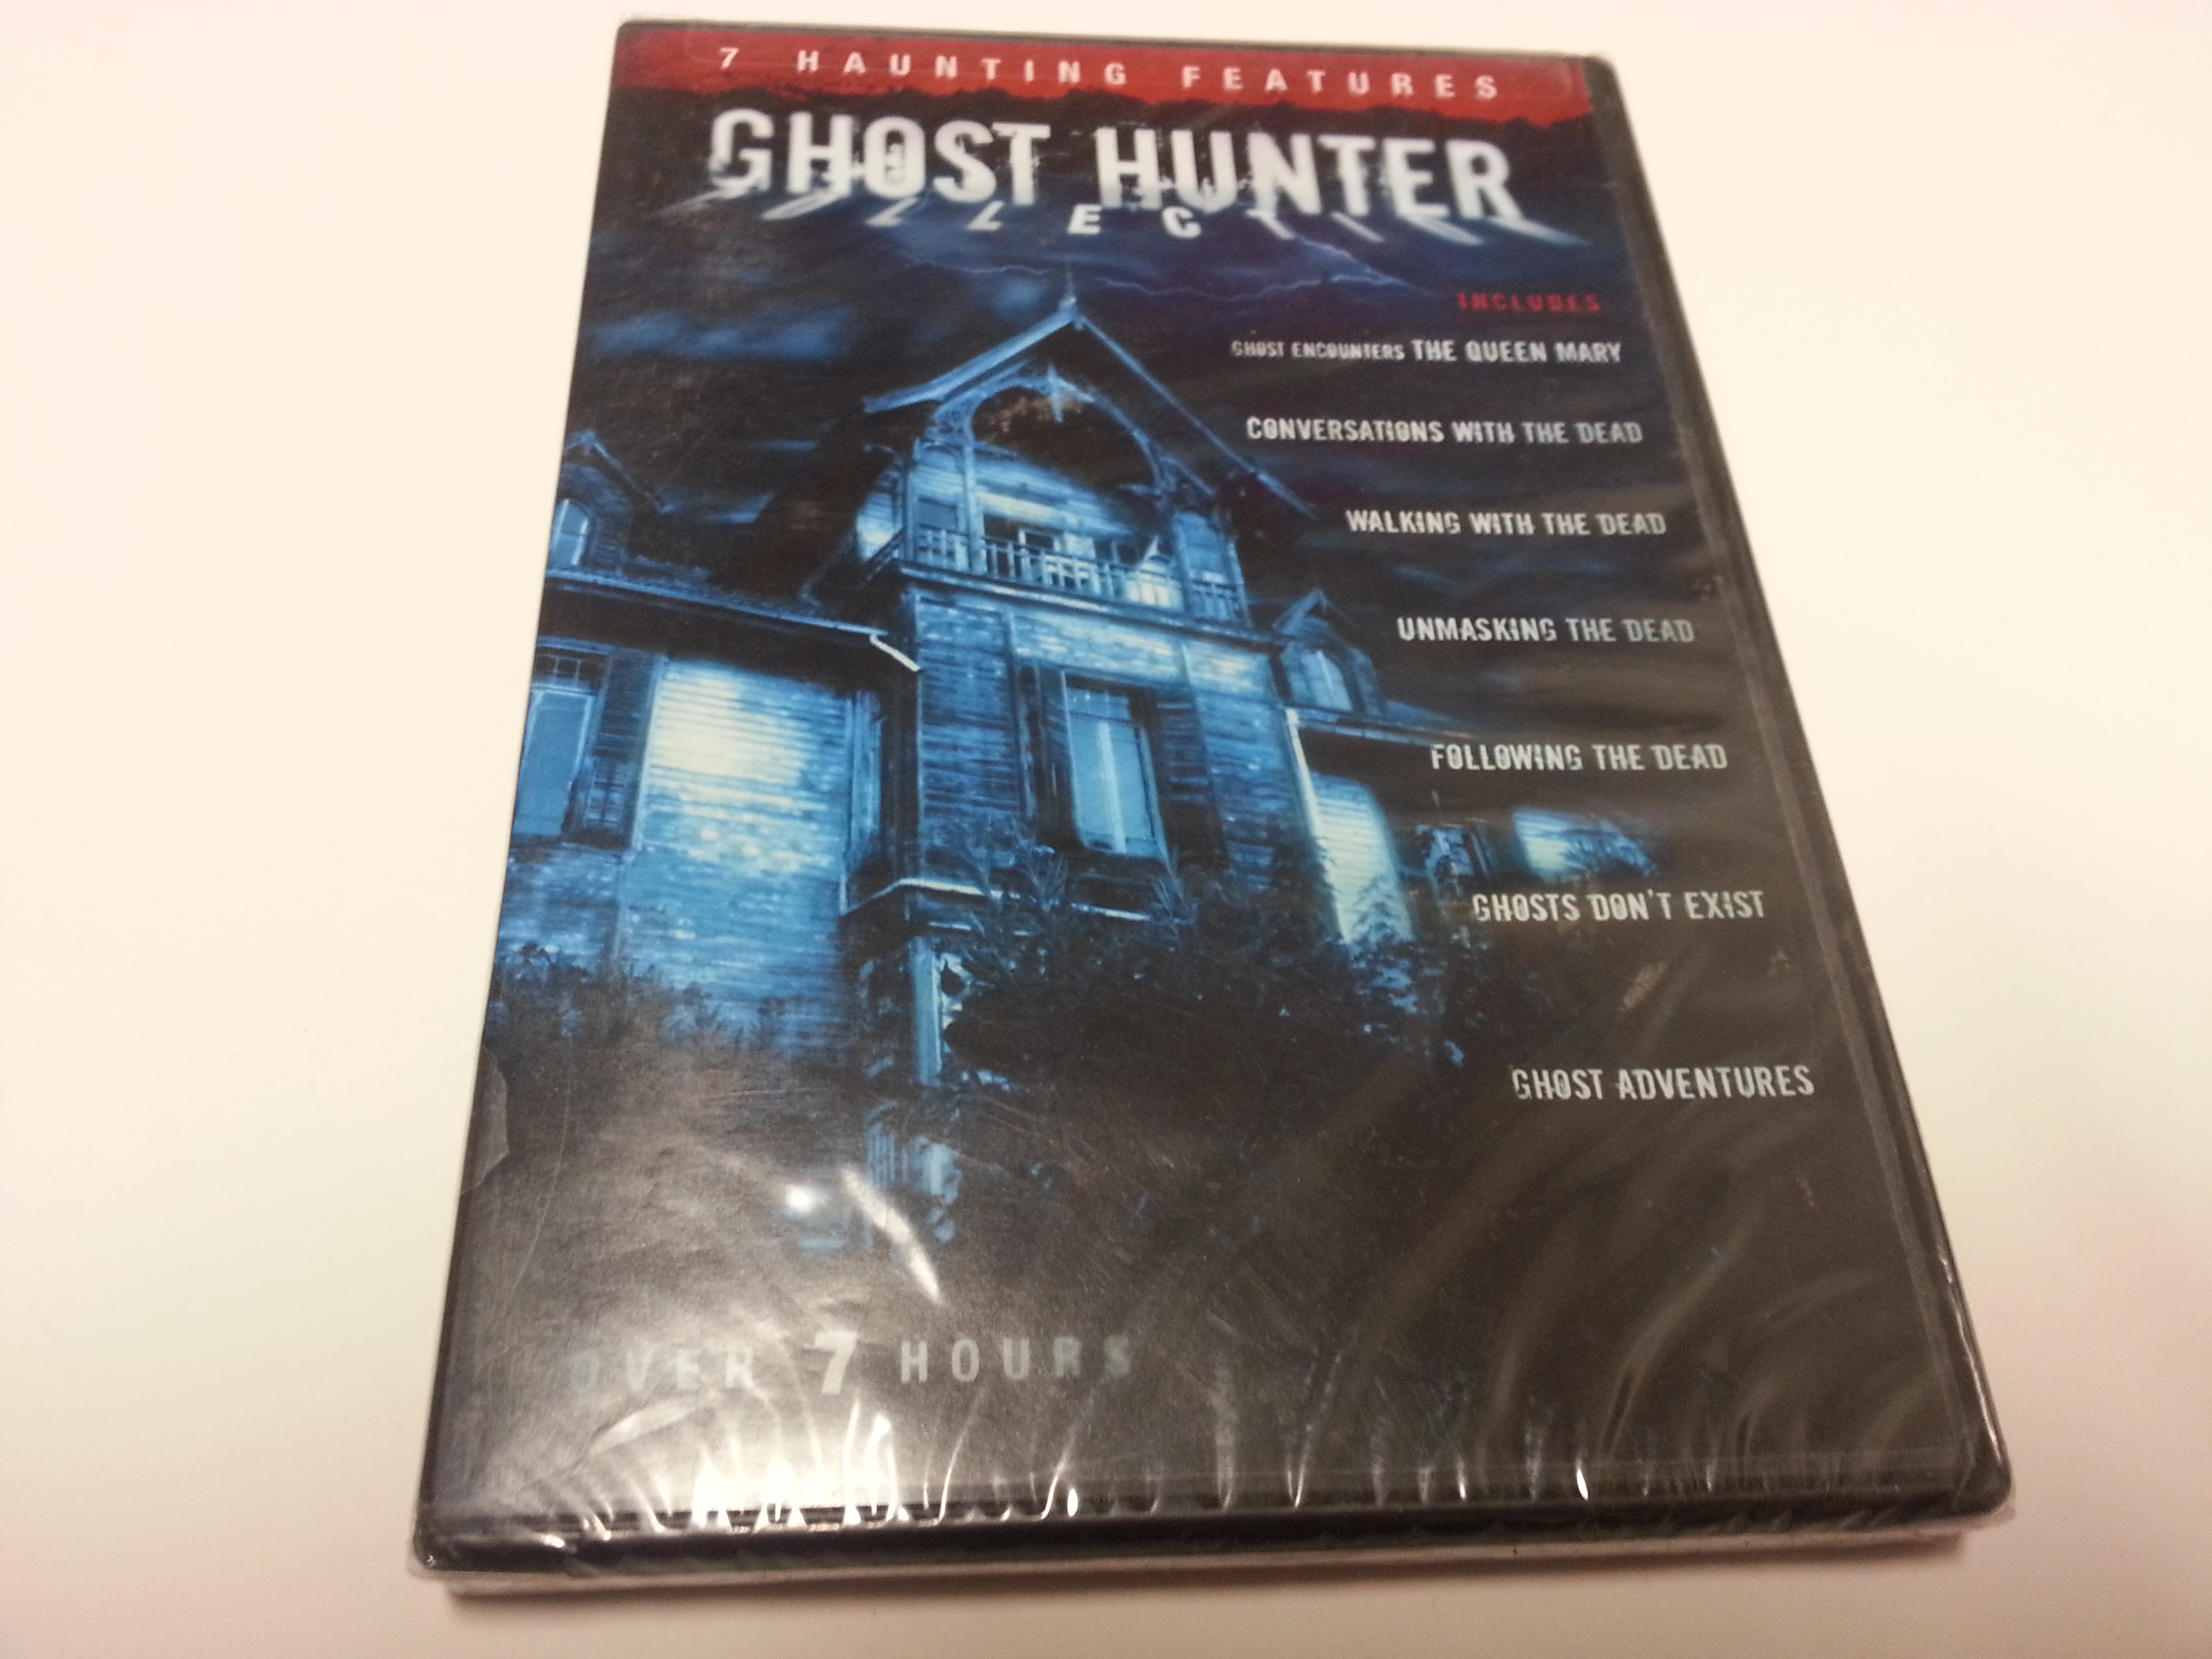 Ghost Hunter Collection 7 Haunting Features Over 7 Hours